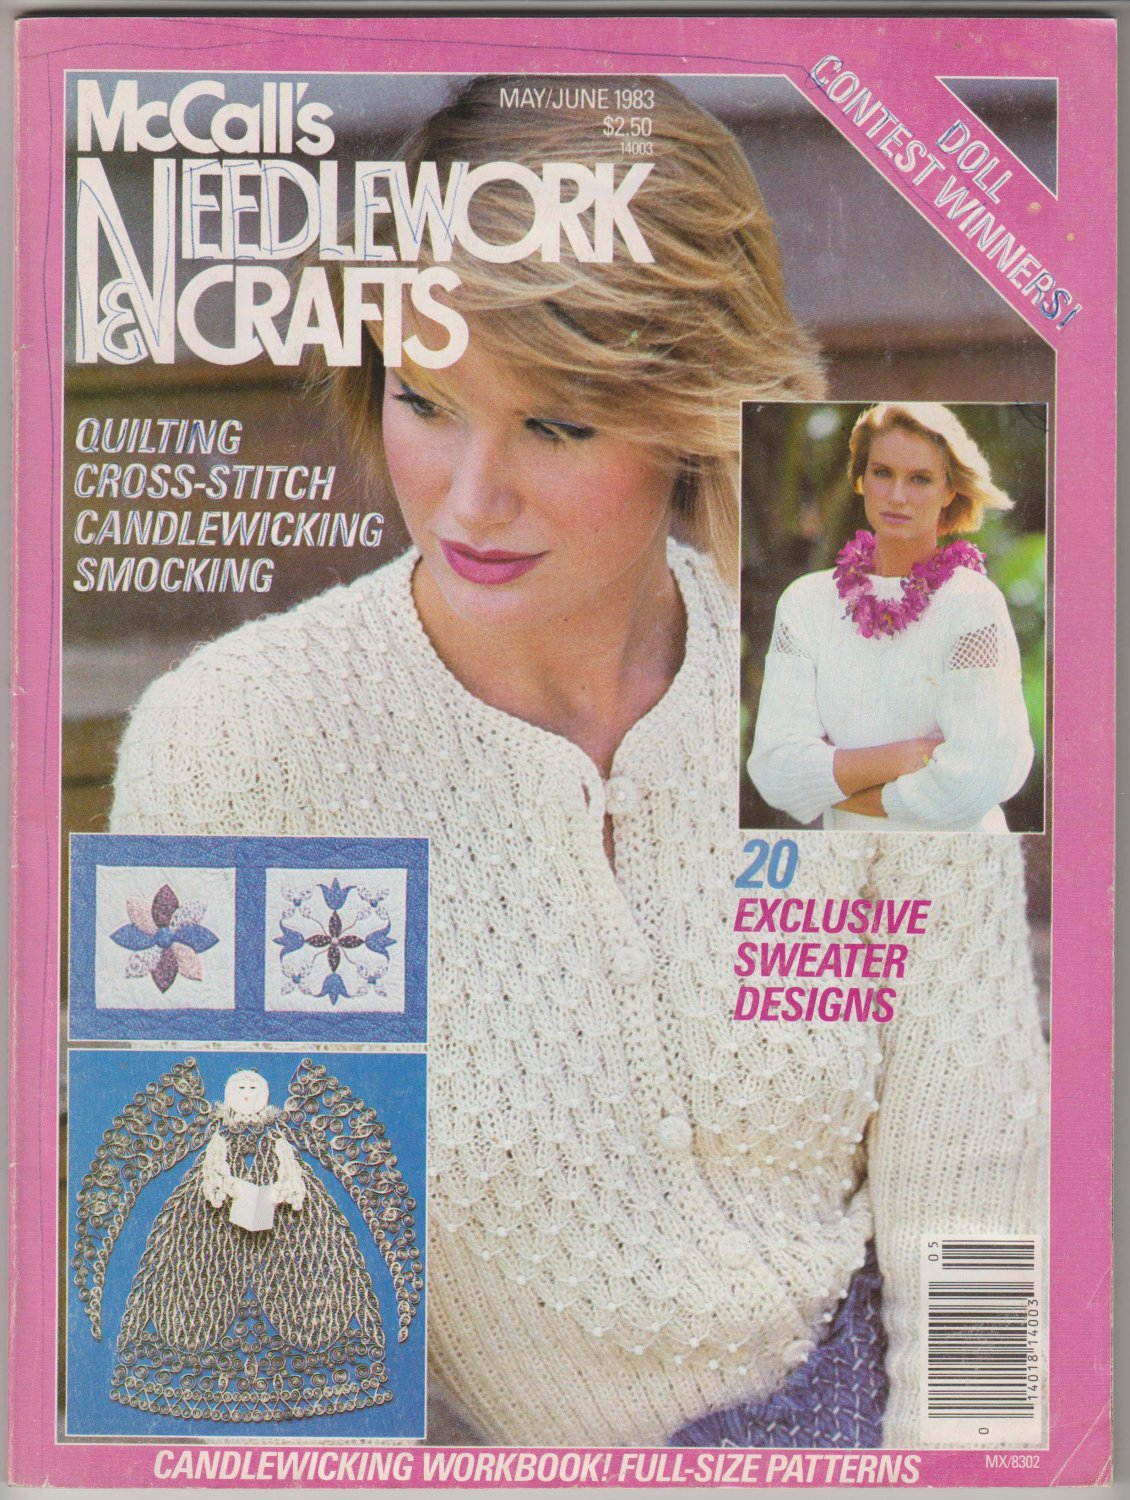 McCall's Needlework & Crafts May/June 1983